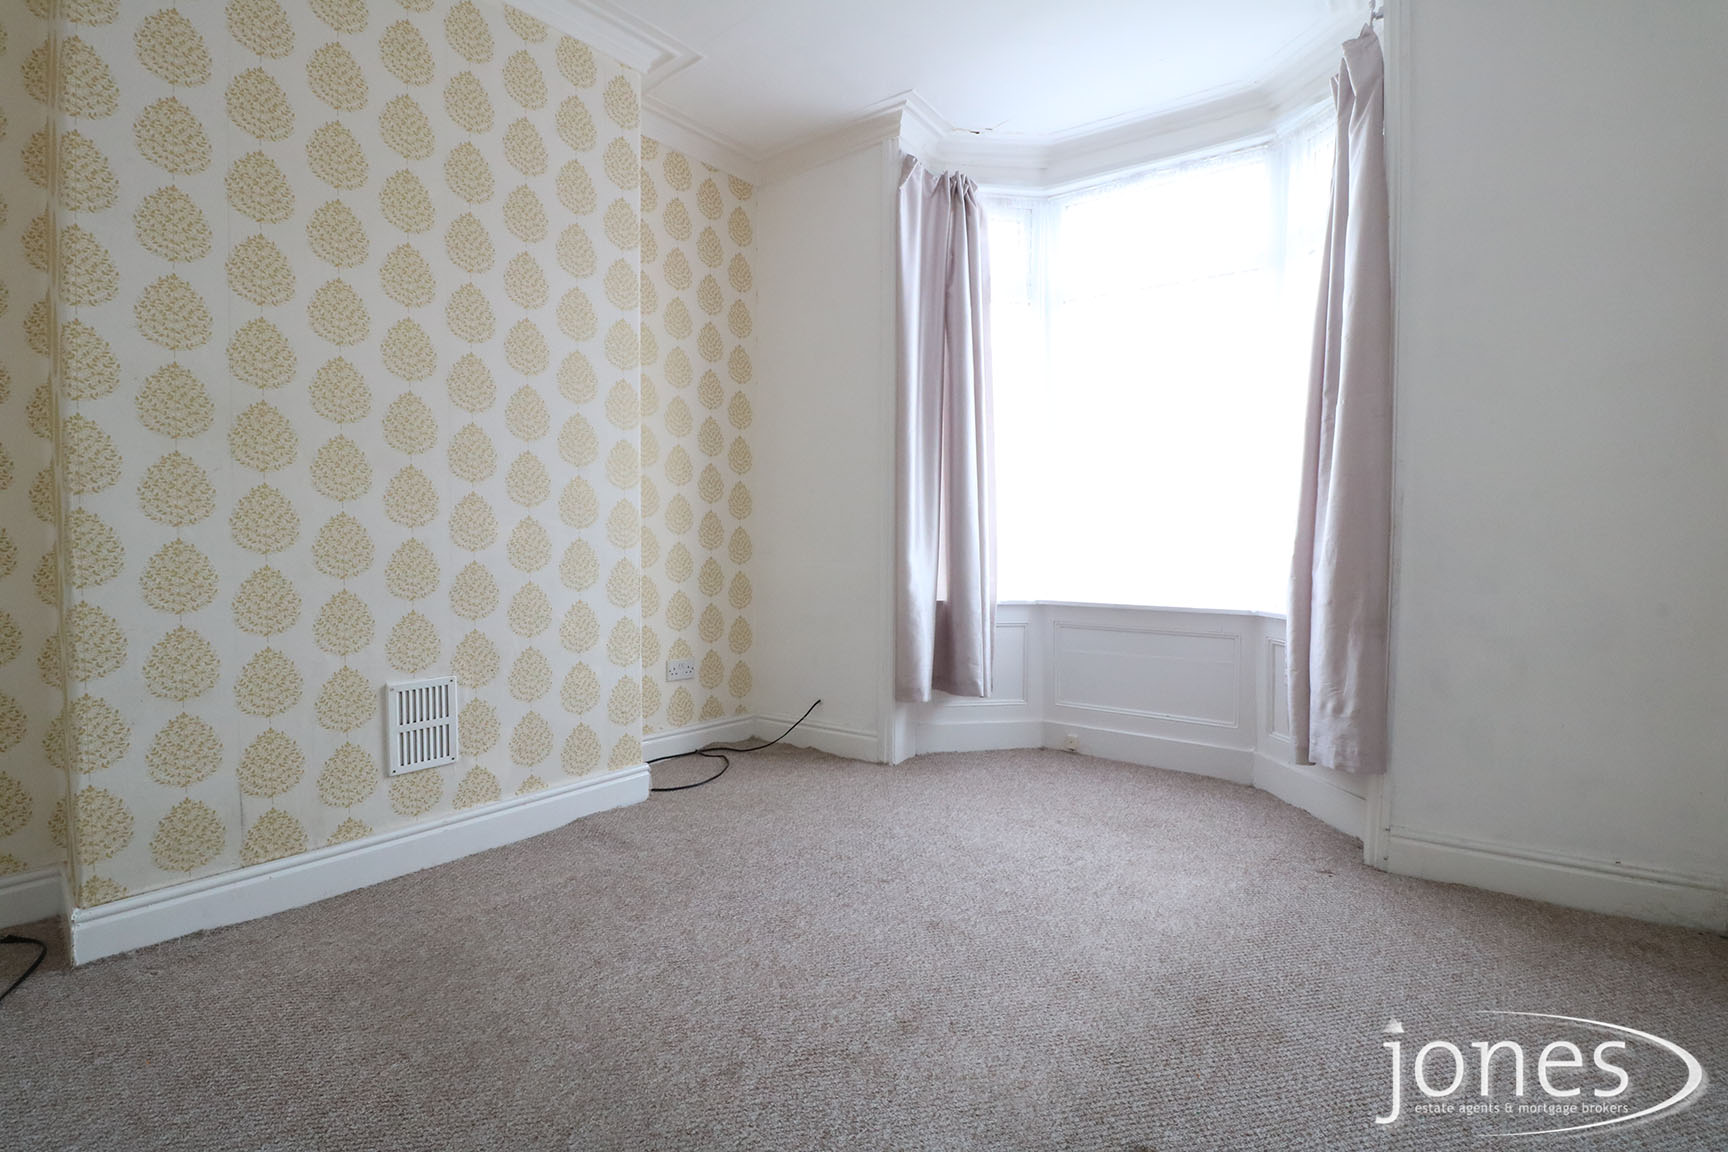 Home for Sale Let - Photo 02 Gilmour Street, Thornaby, Stockton on Tees, TS17 6JR